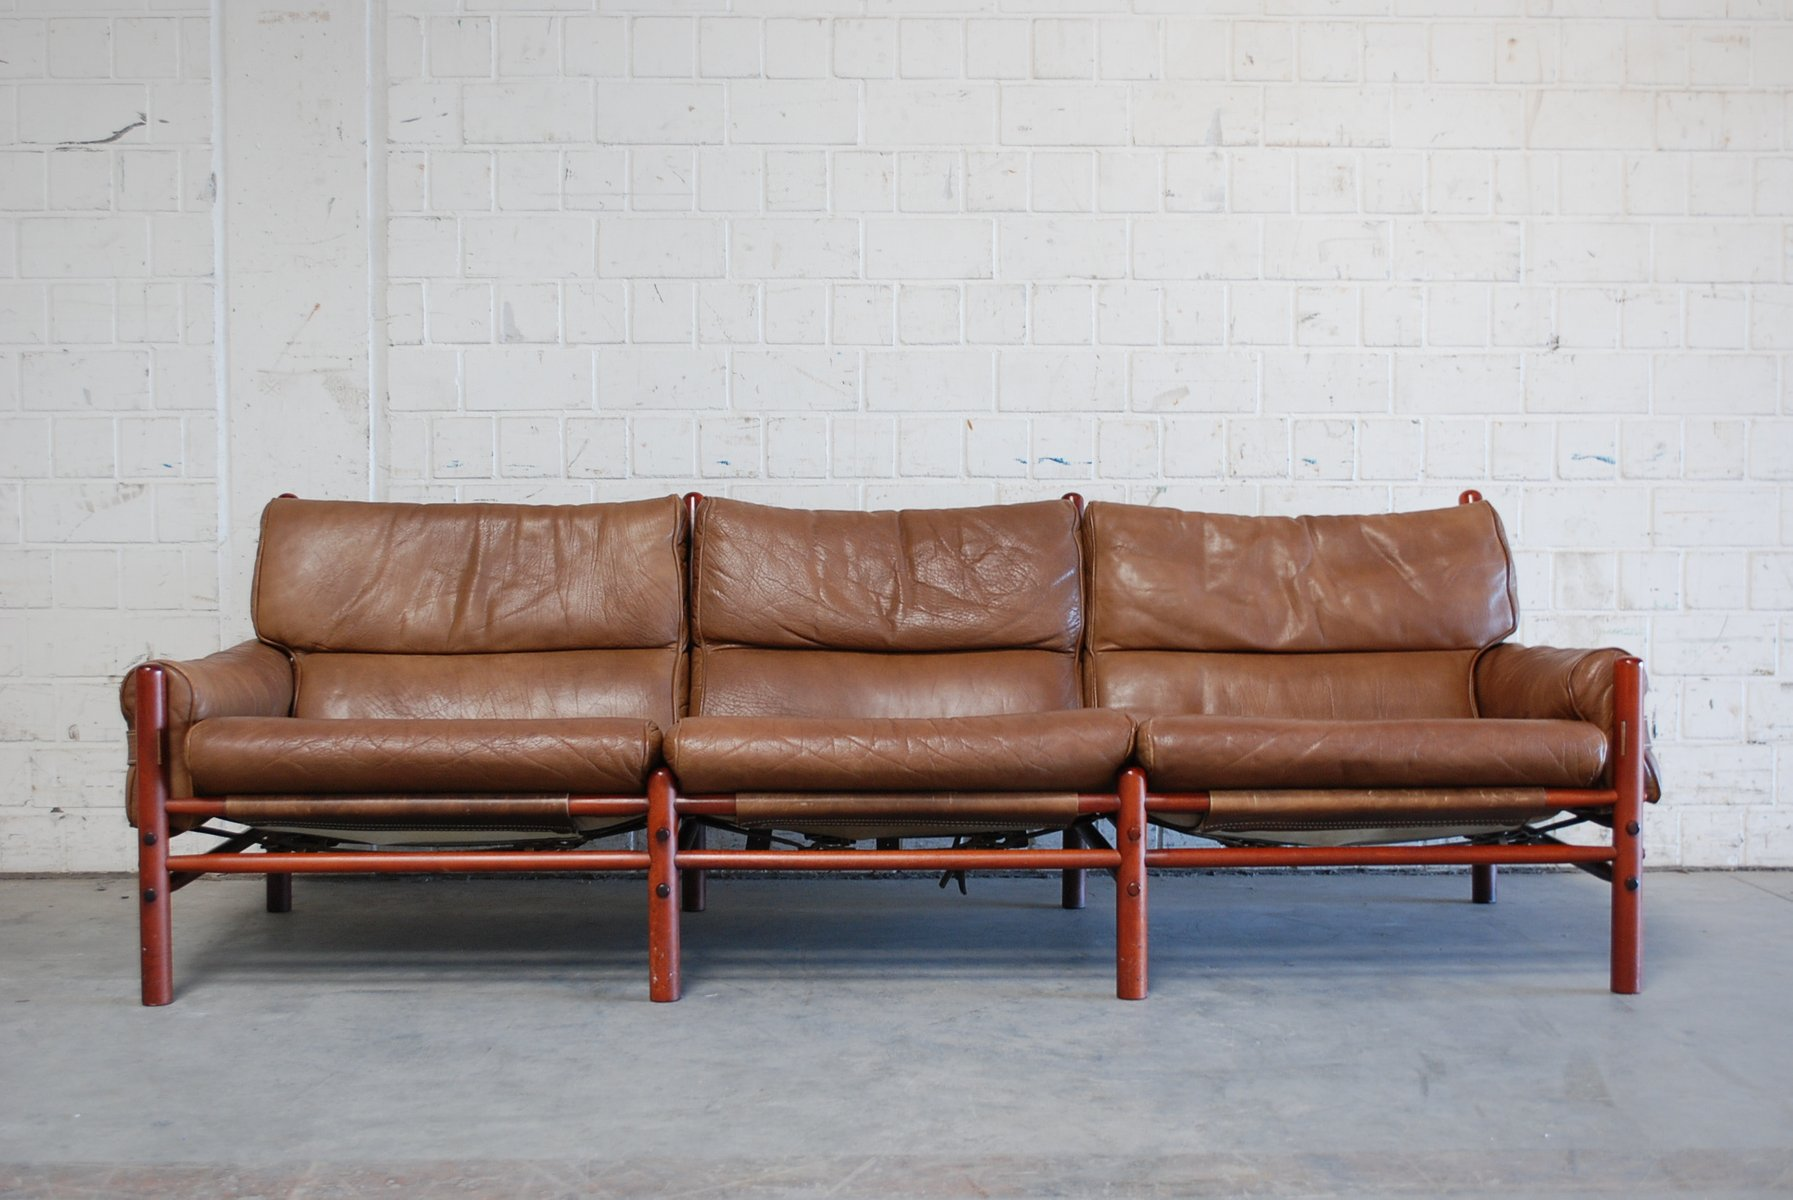 vintage kontiki 3 seater leather sofa by arne norell bei pamono kaufen. Black Bedroom Furniture Sets. Home Design Ideas